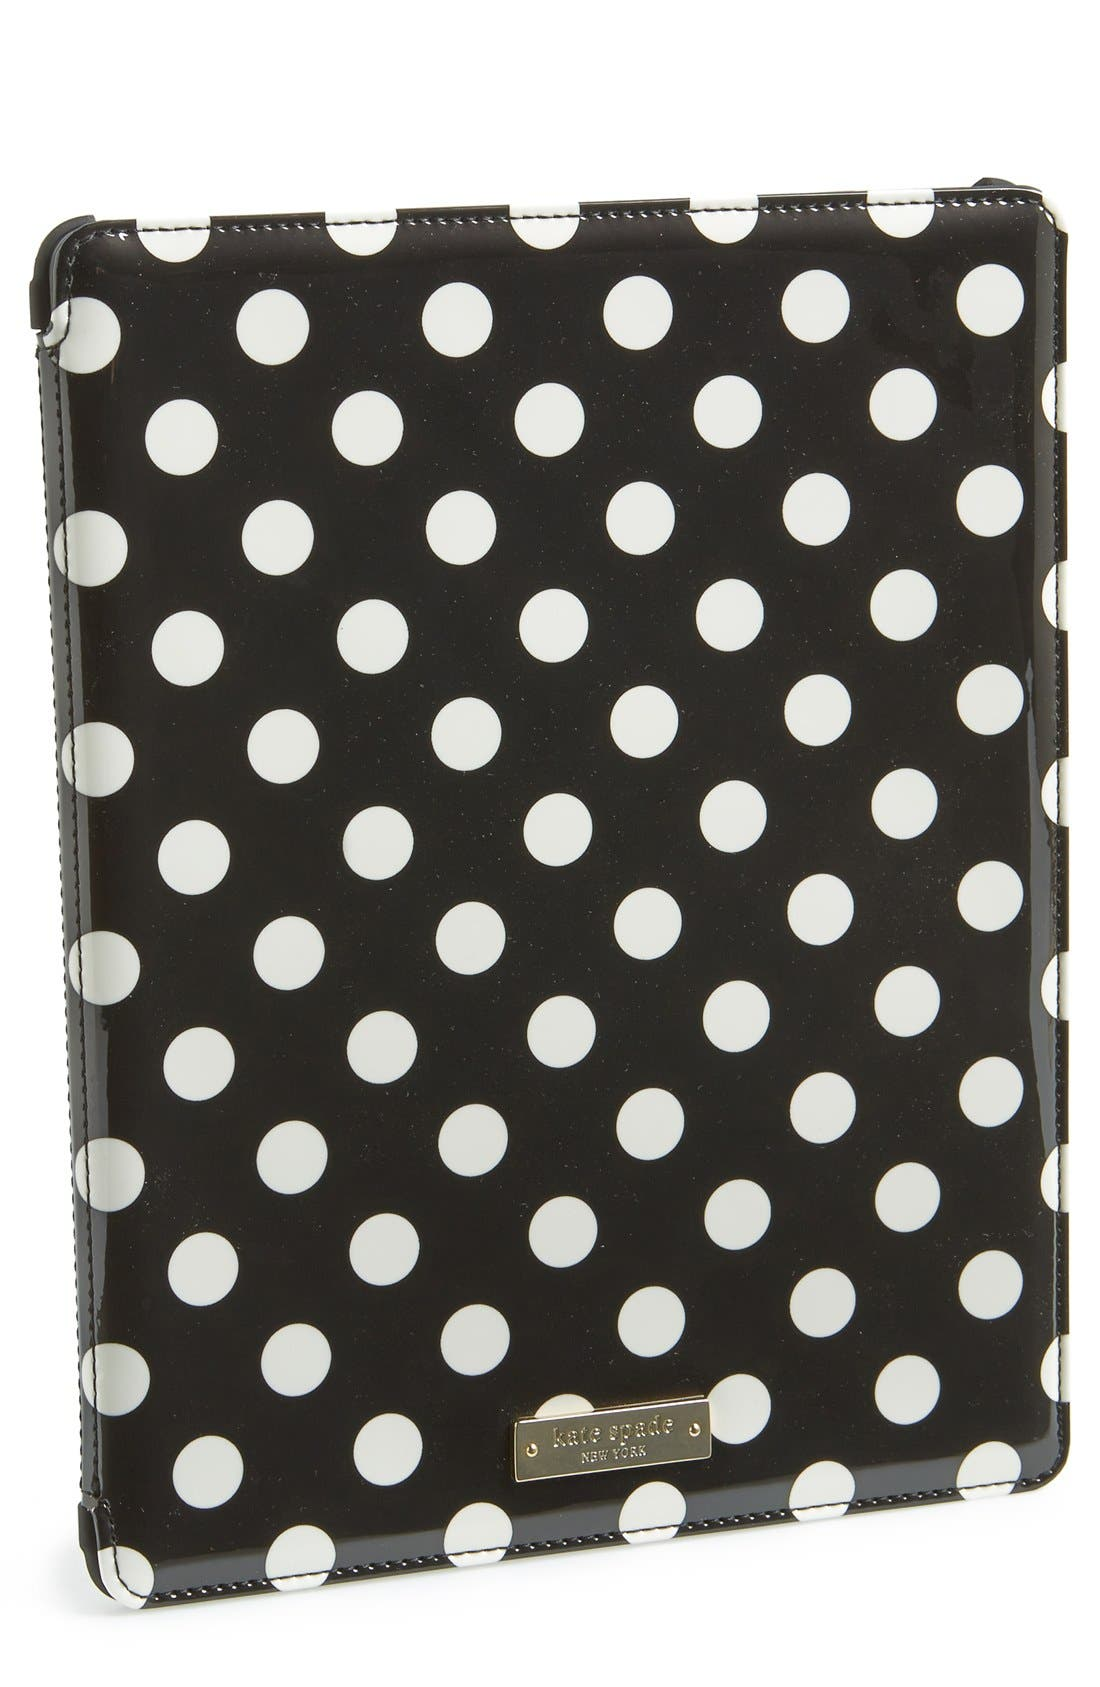 Alternate Image 1 Selected - kate spade new york 'la pavillion' iPad folio